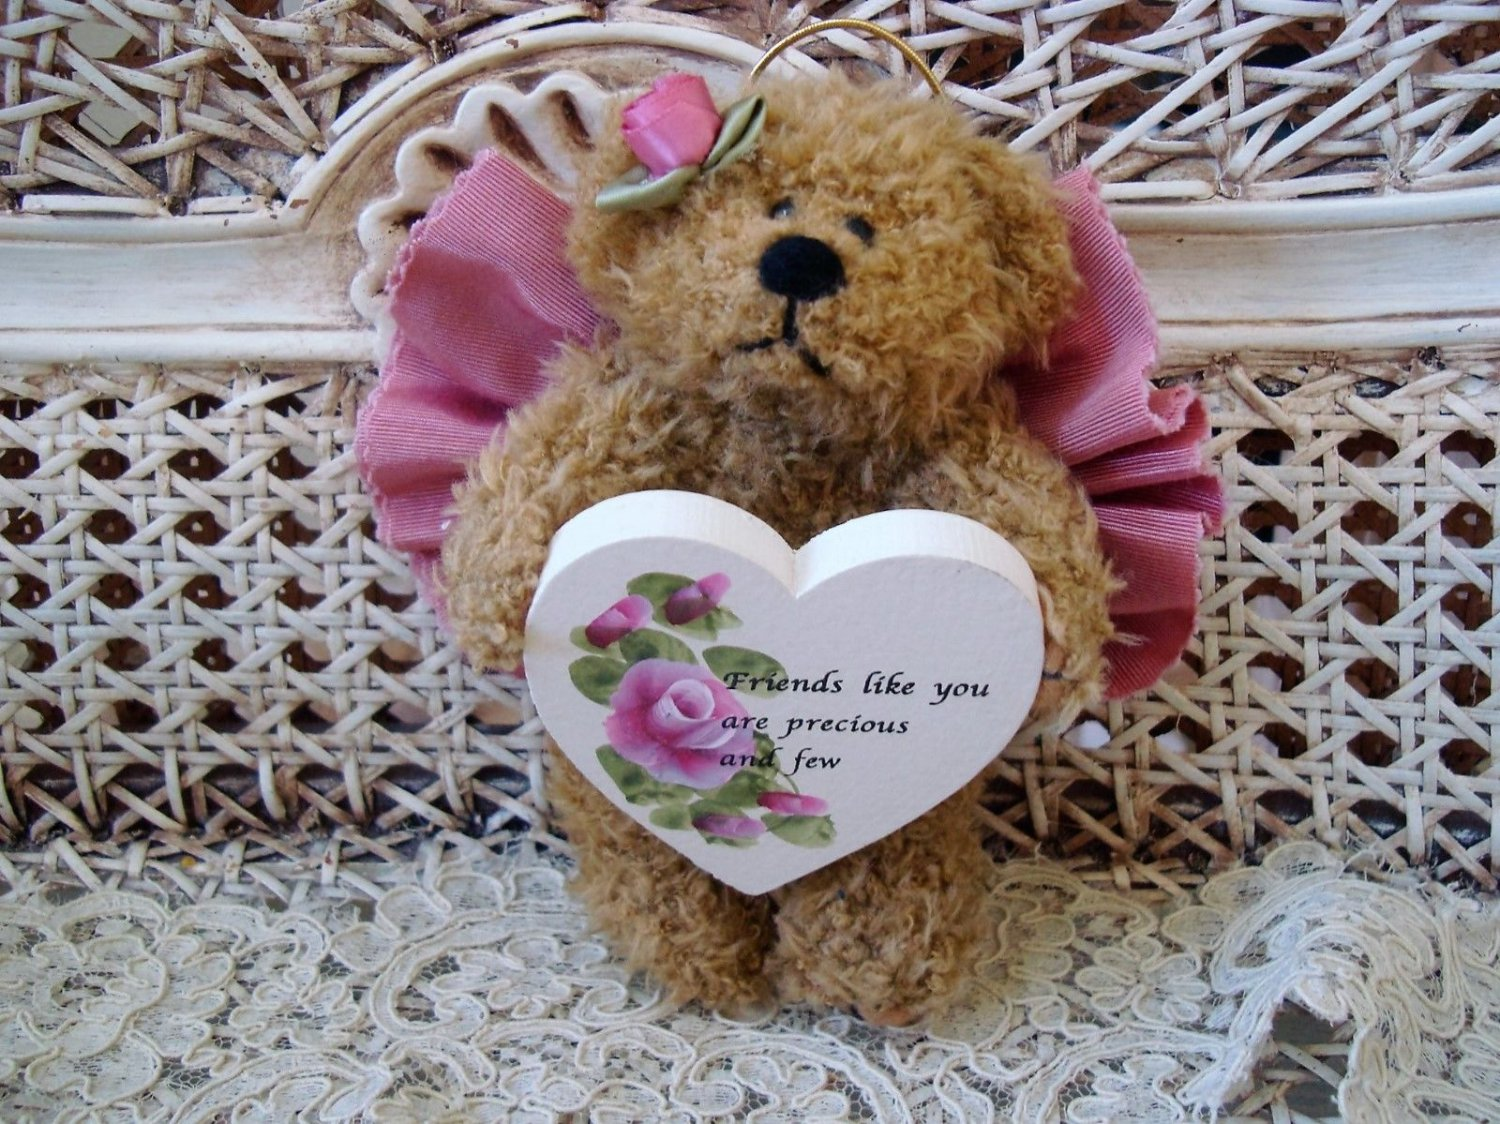 FRIENDS LIKE YOU ARE PRECIOUS AND FEW MAUVE BEAR ORNAMENT WITH WOODEN HEART